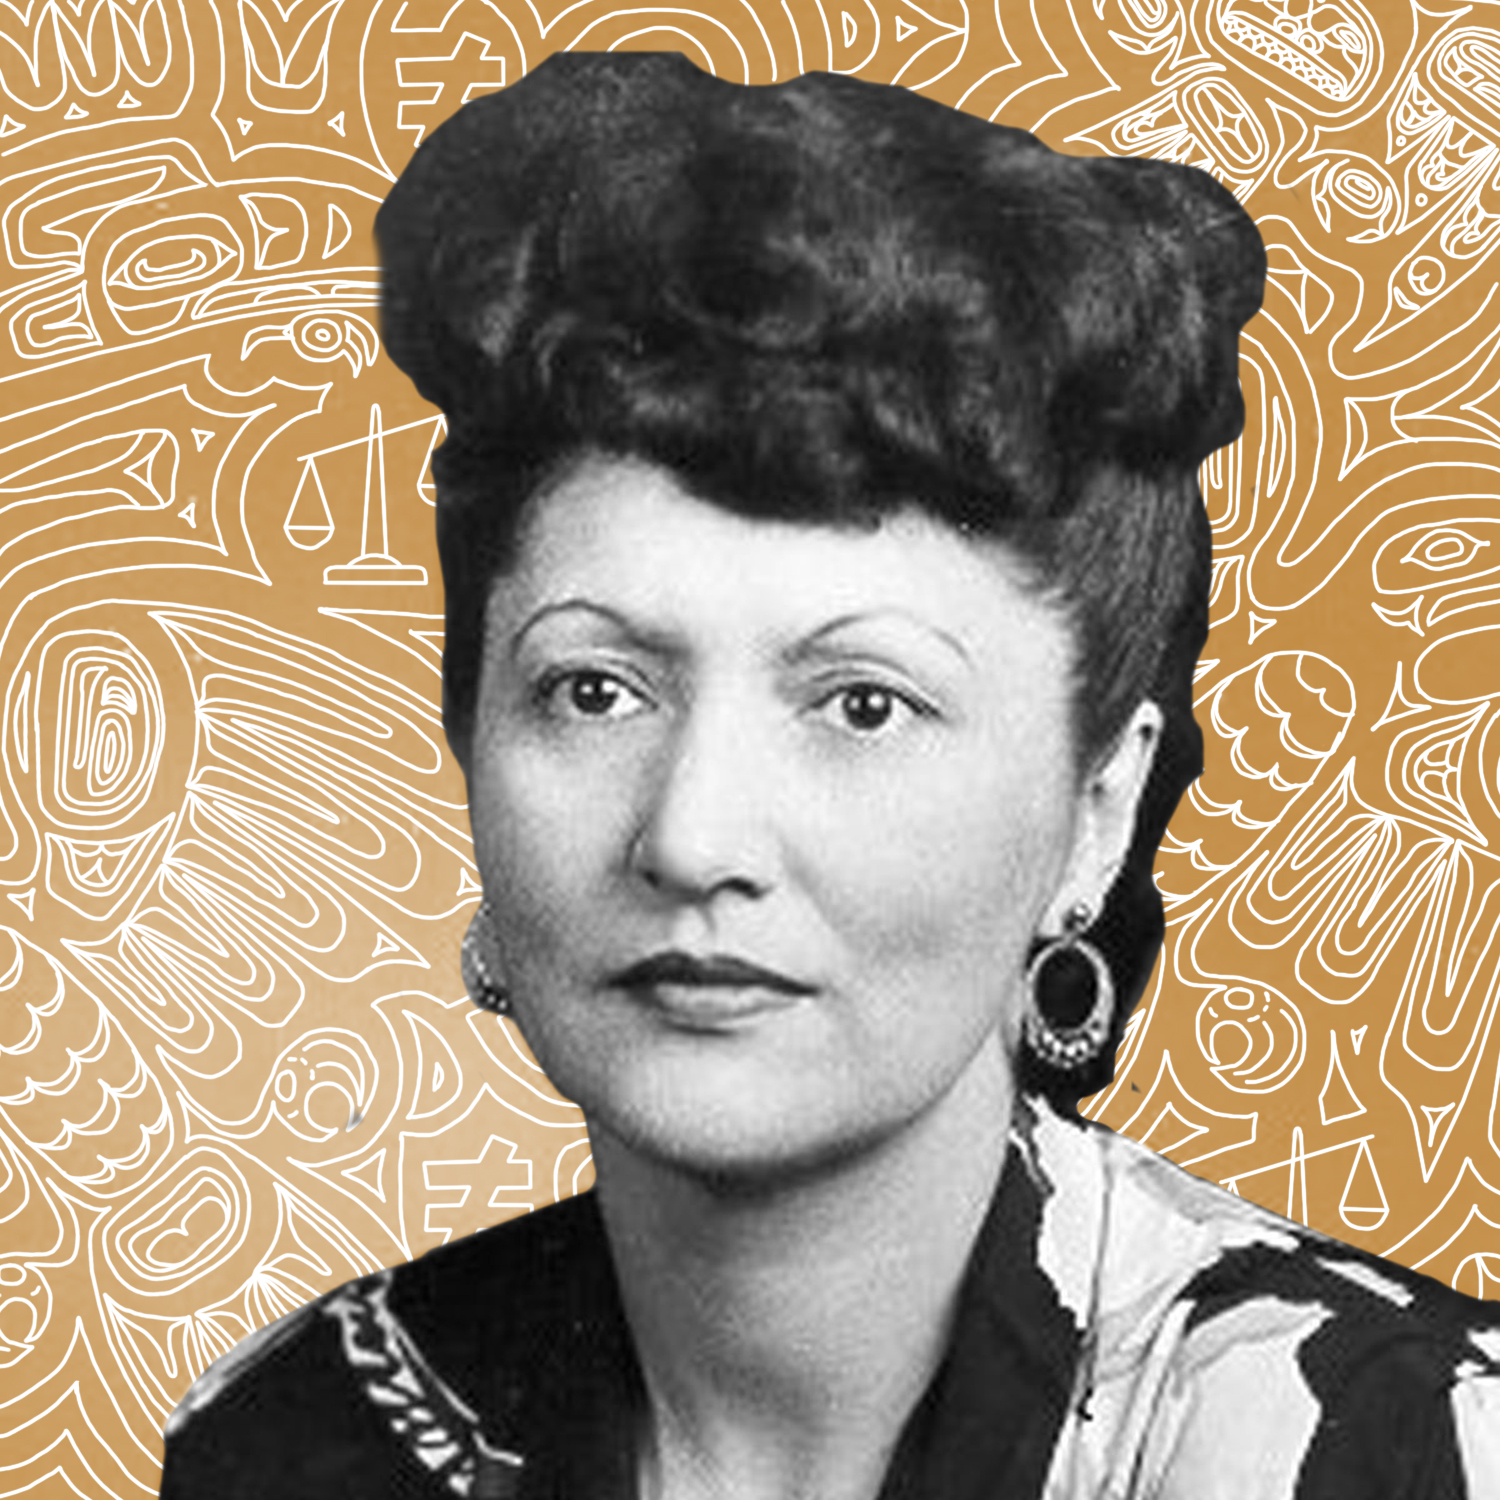 """Elizabeth Wanamaker Peratrovich   In 1945, Elizabeth (Wanamaker) Peratrovich (Tlingit) was instrumental in gaining passage of America's FIRST anti-discrimination law. After encountering """"No Natives Allowed"""" signs, she and her husband worked for passage of the Alaska Anti-Discrimination Act until it finally came before the Senate."""